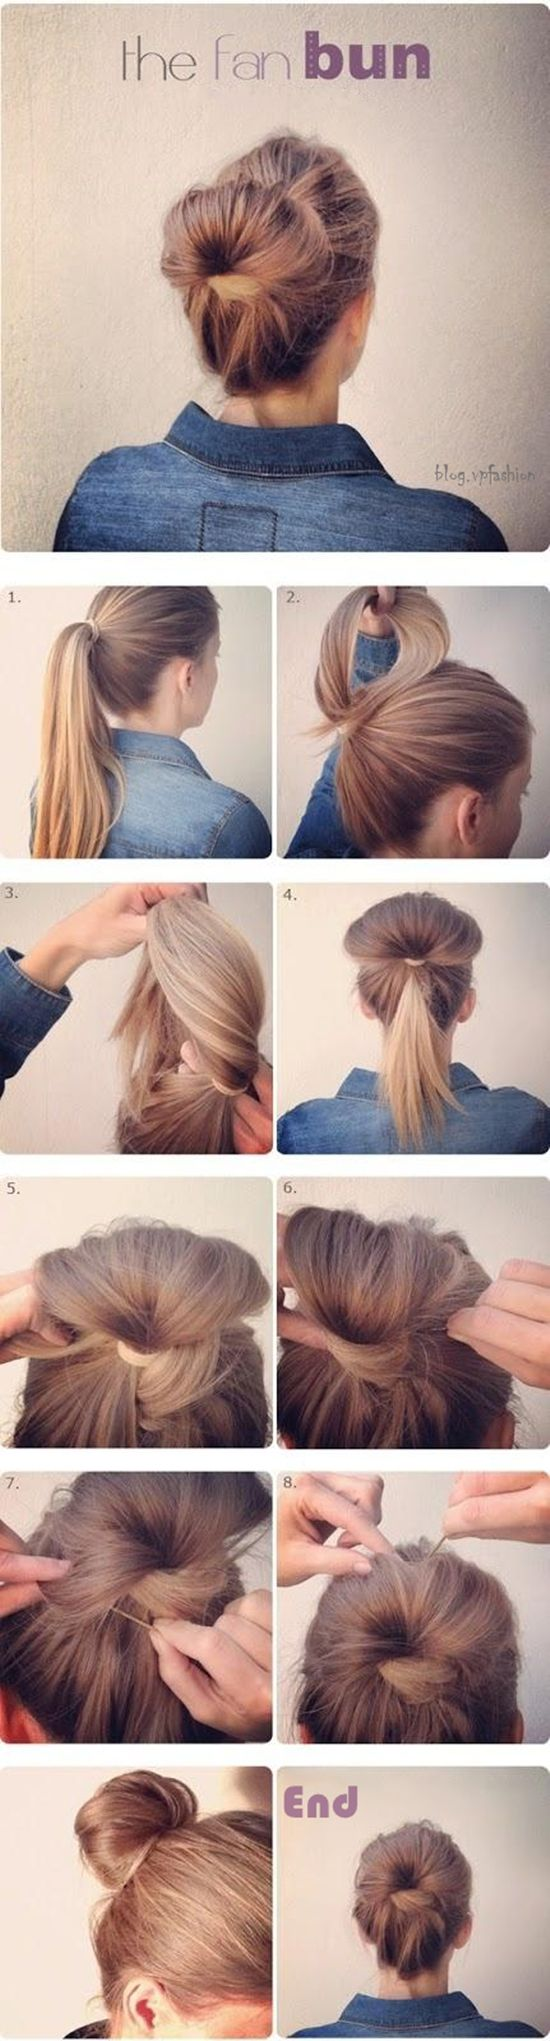 8 Hot Hairstyles You Can Try At Home In Autumn 2013 H A I R